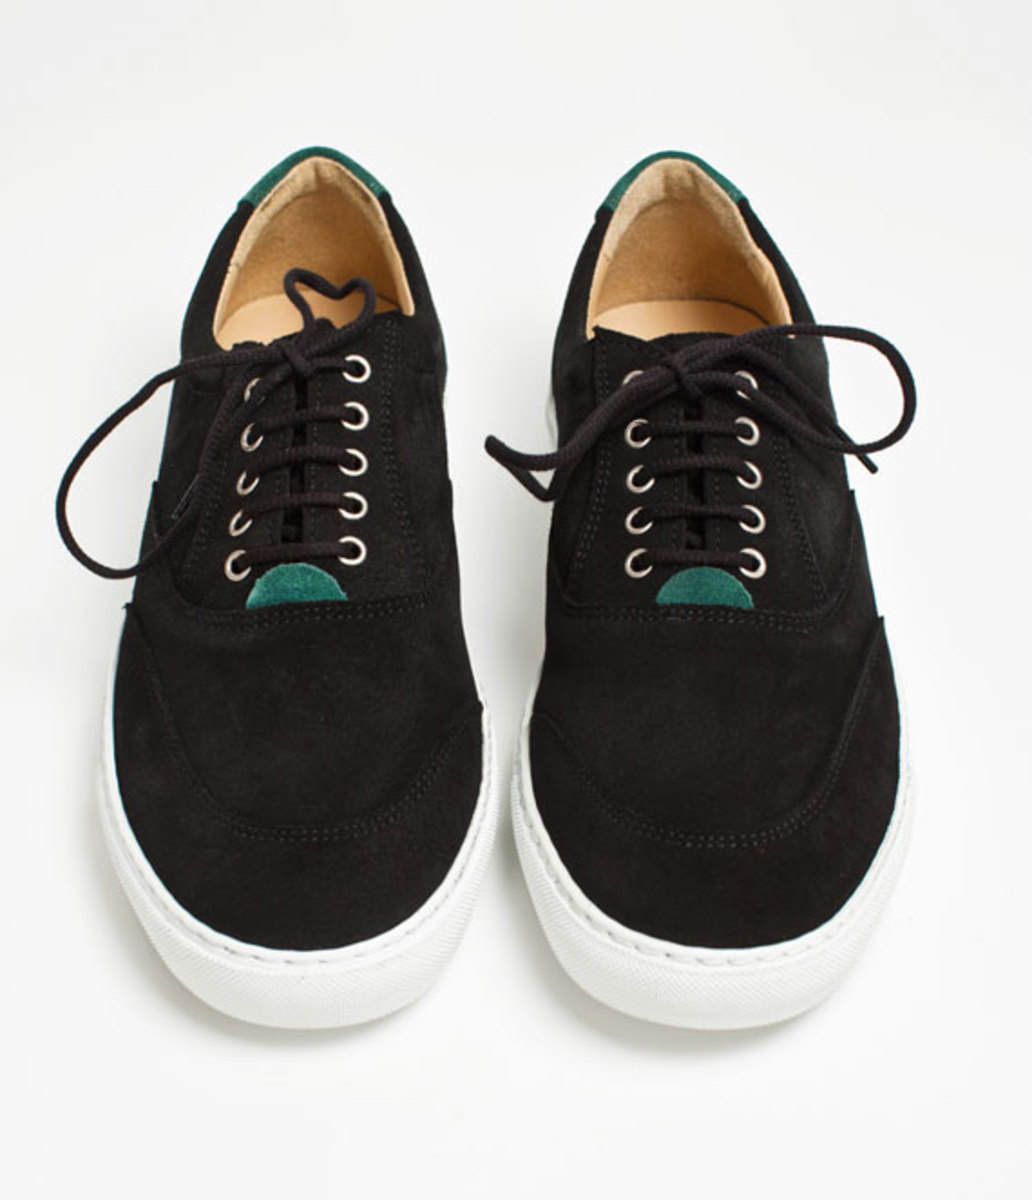 comme-des-garcons-shirt-the-generic-man-fall-2012-footwear-collection-05